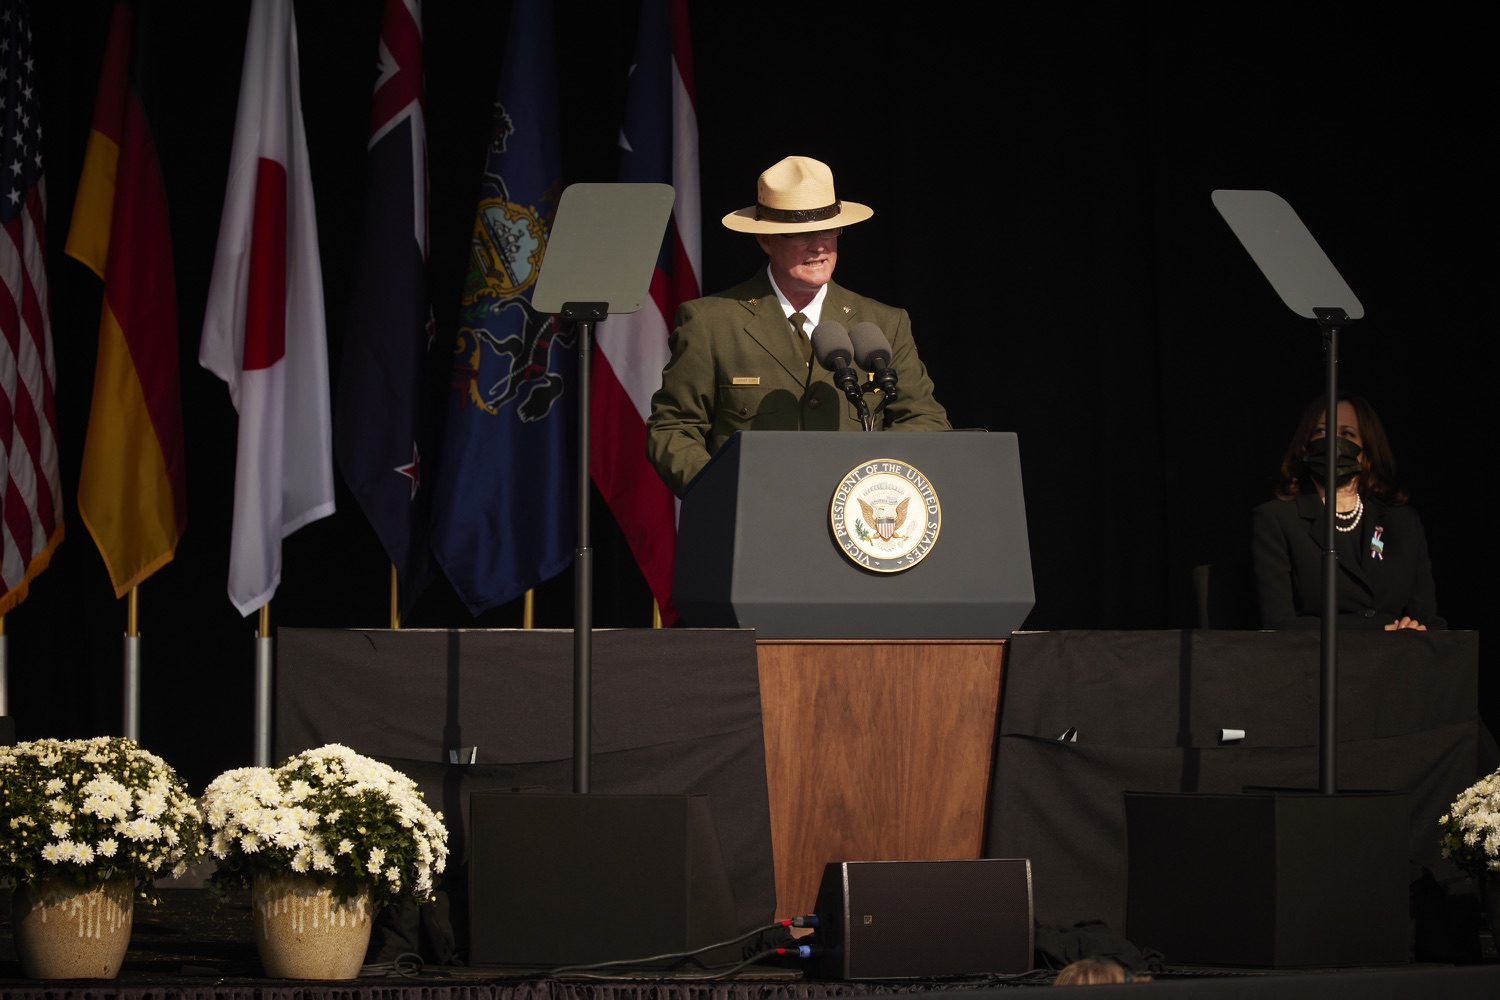 """<a href=""""https://filesource.wostreaming.net/commonwealthofpa/photo/19117_gov_Flight_93_Memorial_dz_504.JPG"""" target=""""_blank"""">⇣Download Photo<br></a>Stephen Clark, Superintendent Flight 93 National Memorial speaks at the memorial.Today, Governor Tom Wolf visited the Flight 93 National Memorial for the 20th annual September 11 observance. Gov. Wolf joined families and guests to honor the passengers and crew of Flight 93. Flight 93 National Memorial, Shanksville, PA - September 11, 2021"""